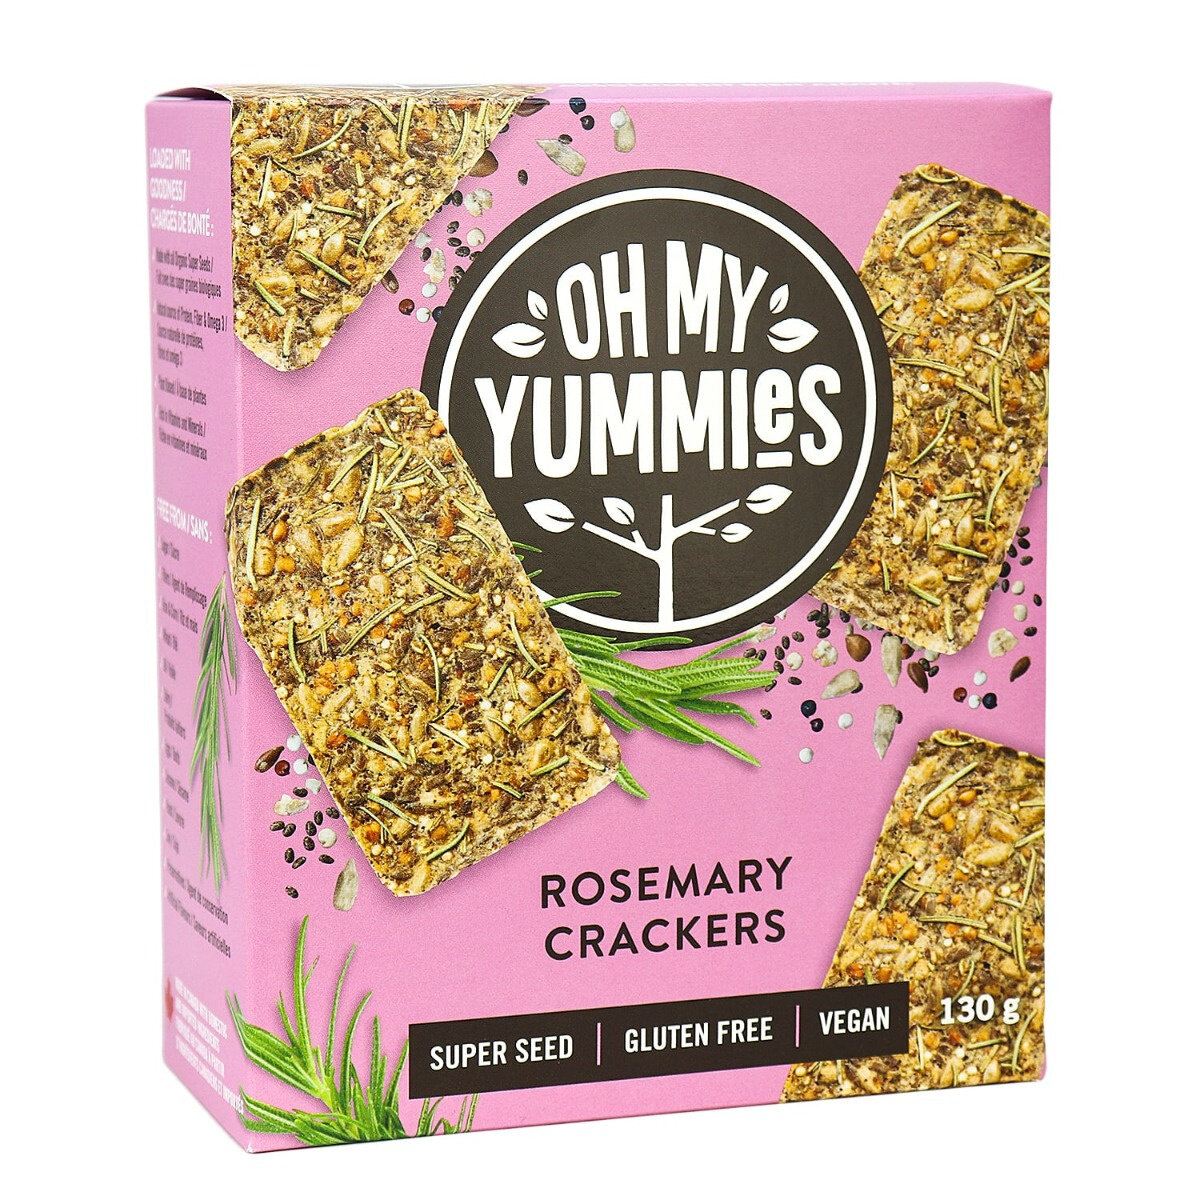 Oh My Yummies - Rosemary Crackers